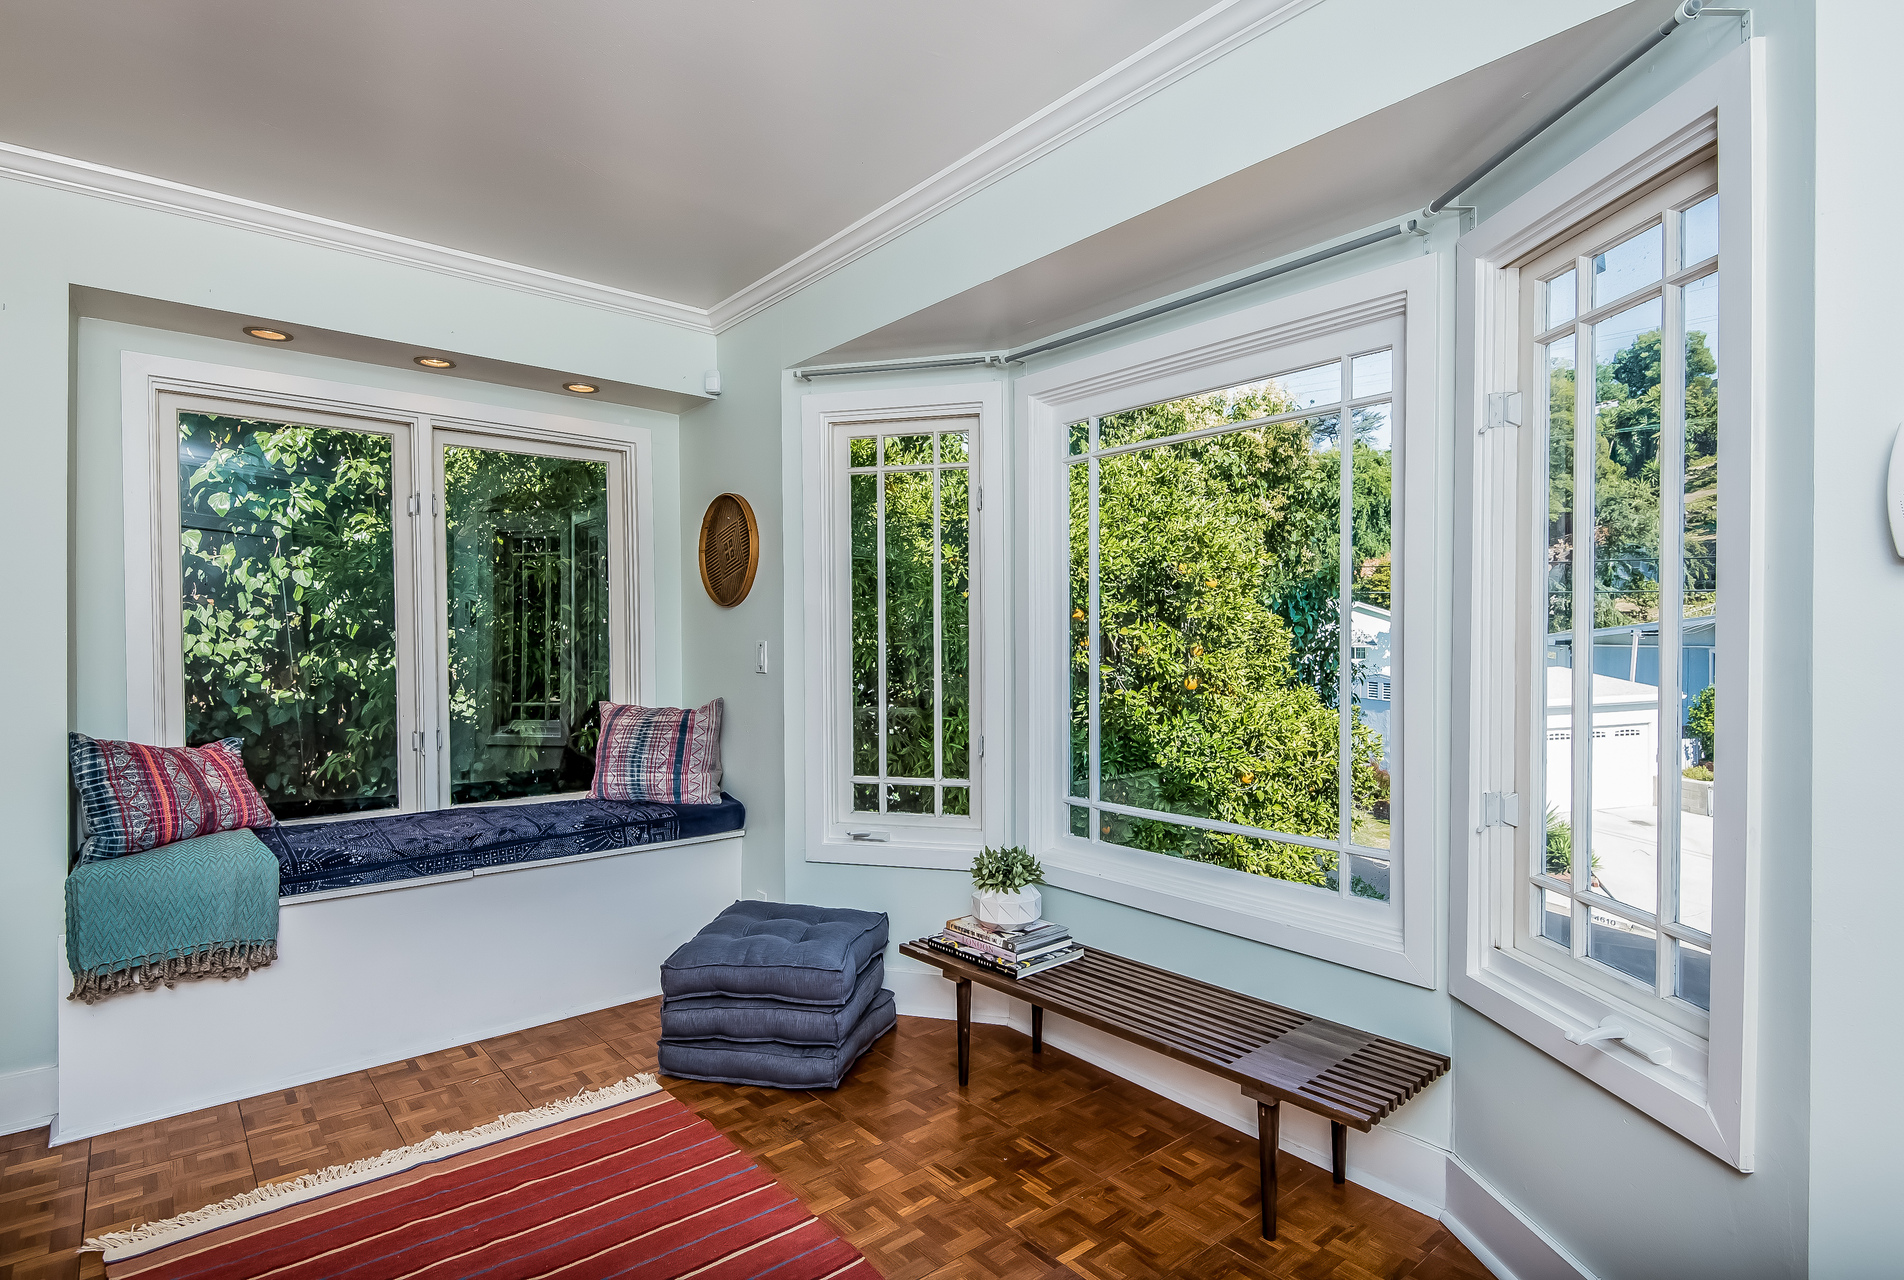 003-Living_Room-_window_seat-2907719-medium.jpg